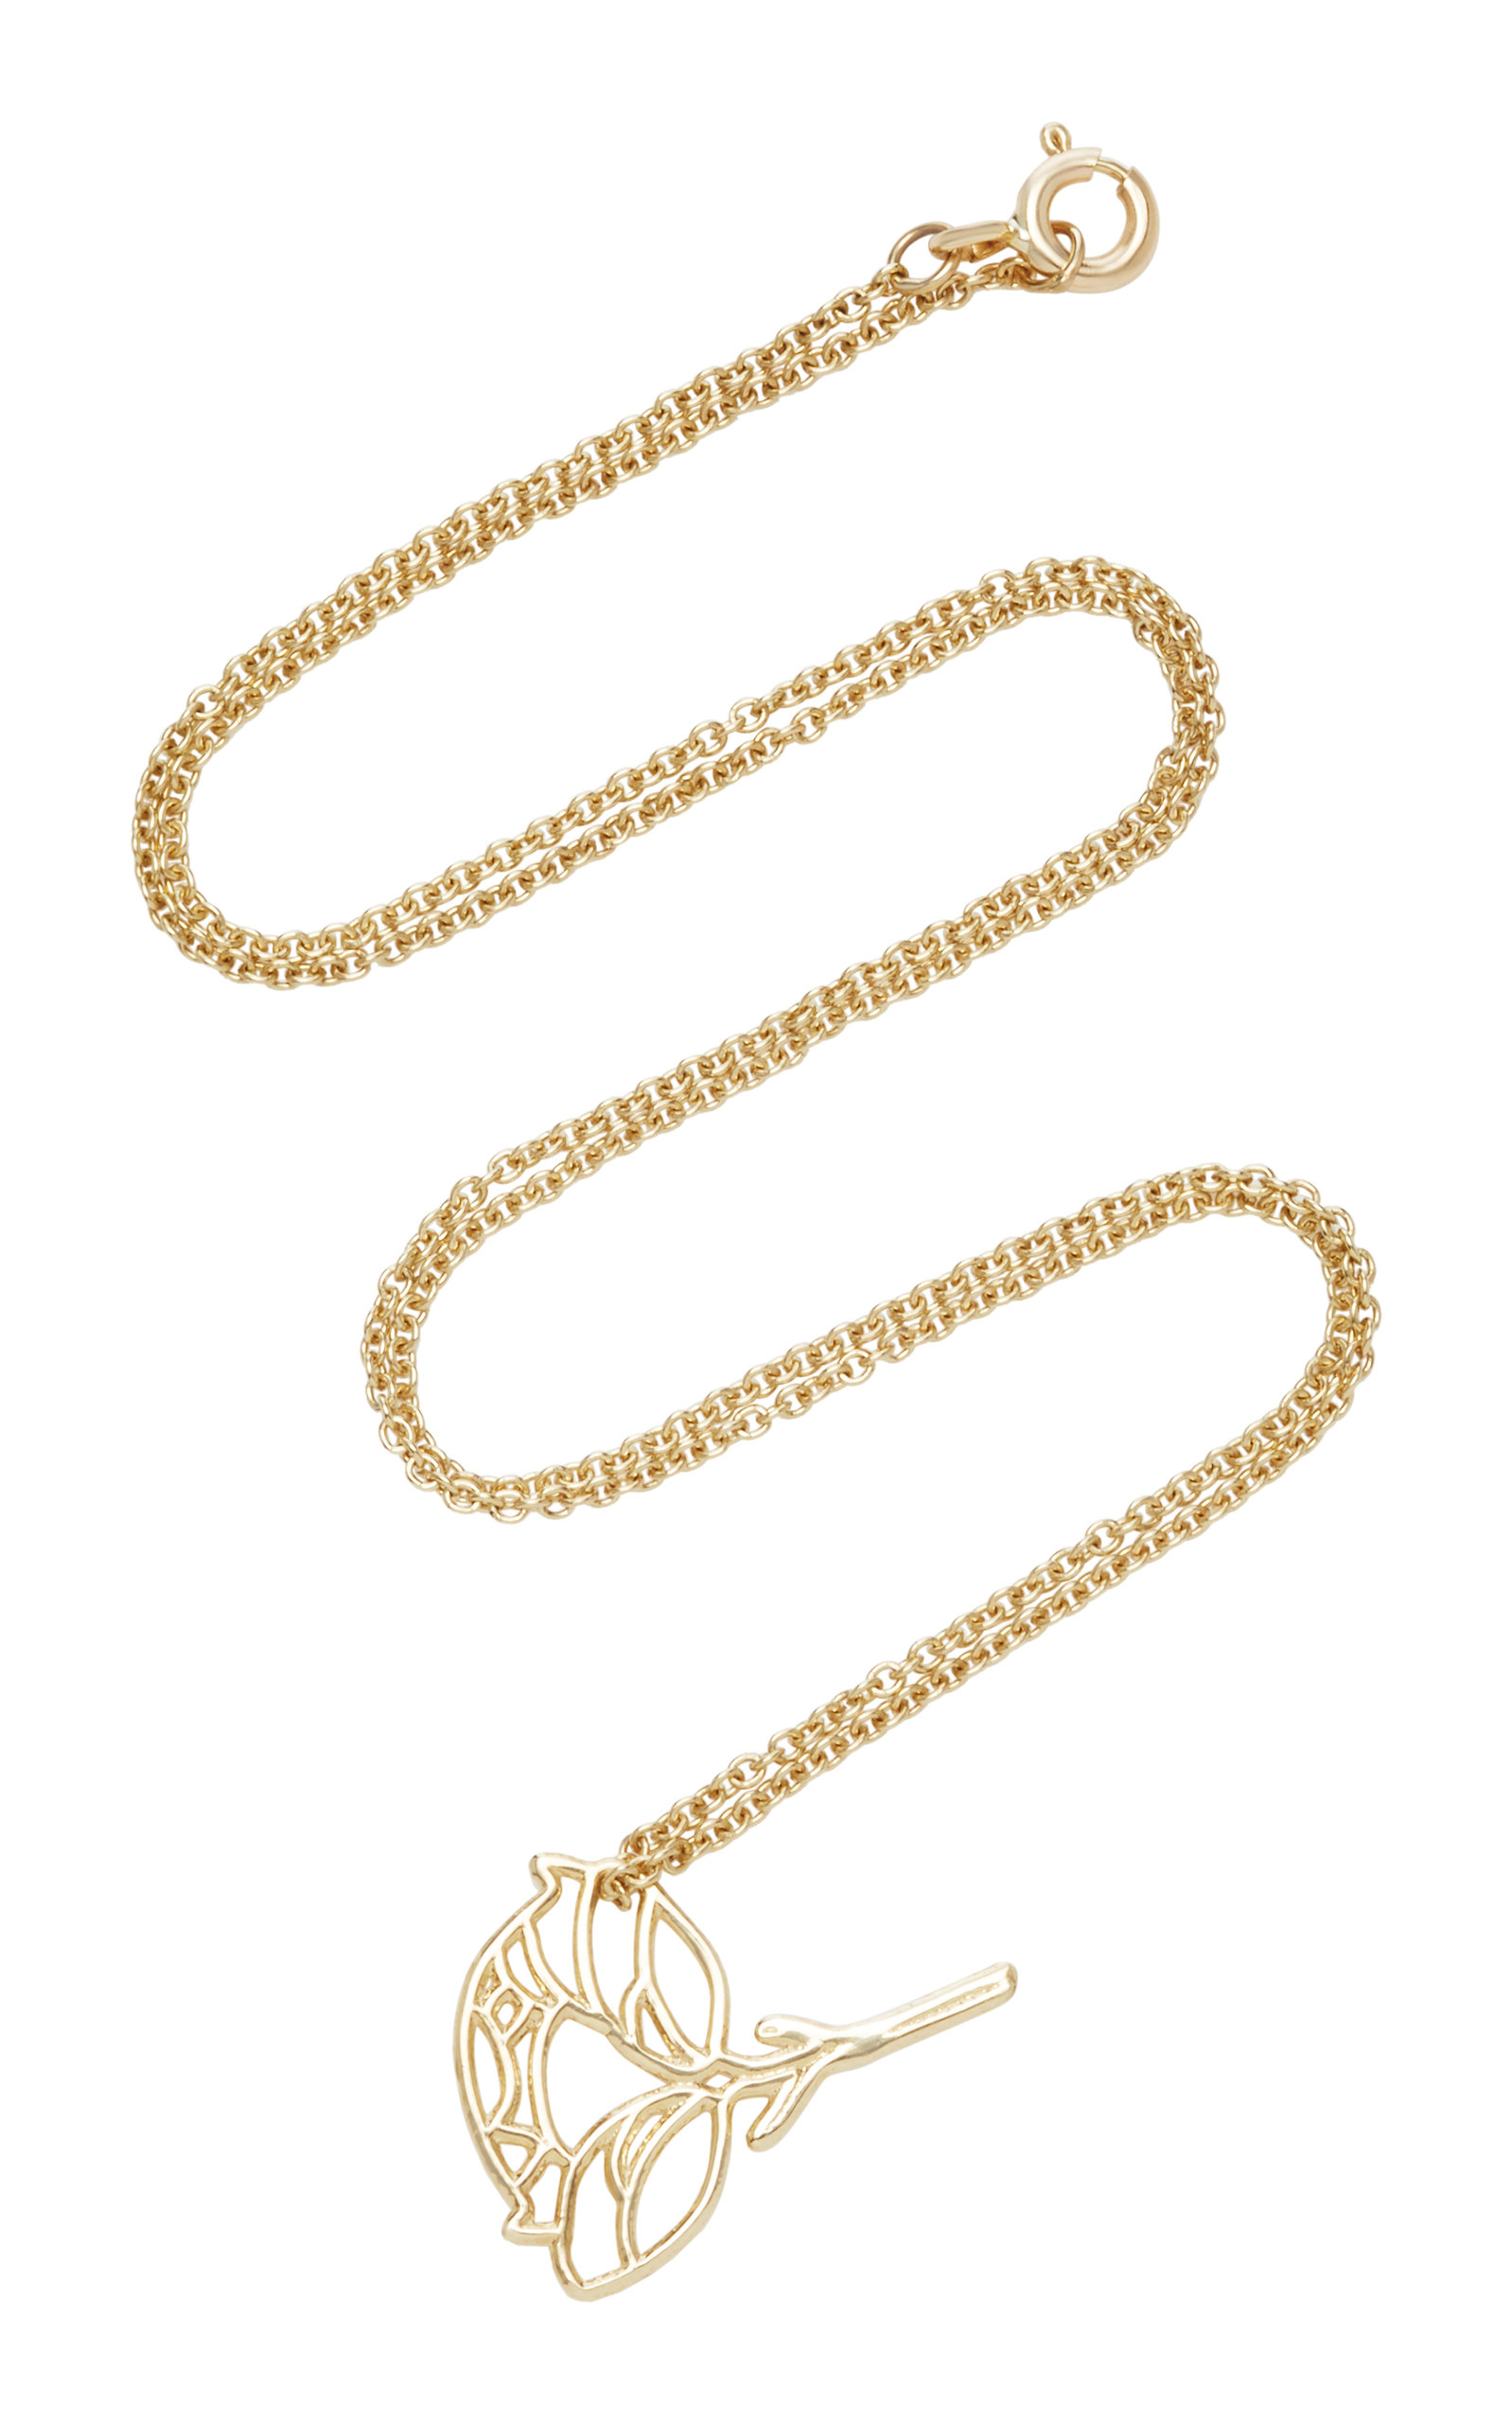 LIL MILAN PEONY 18K GOLD NECKLACE